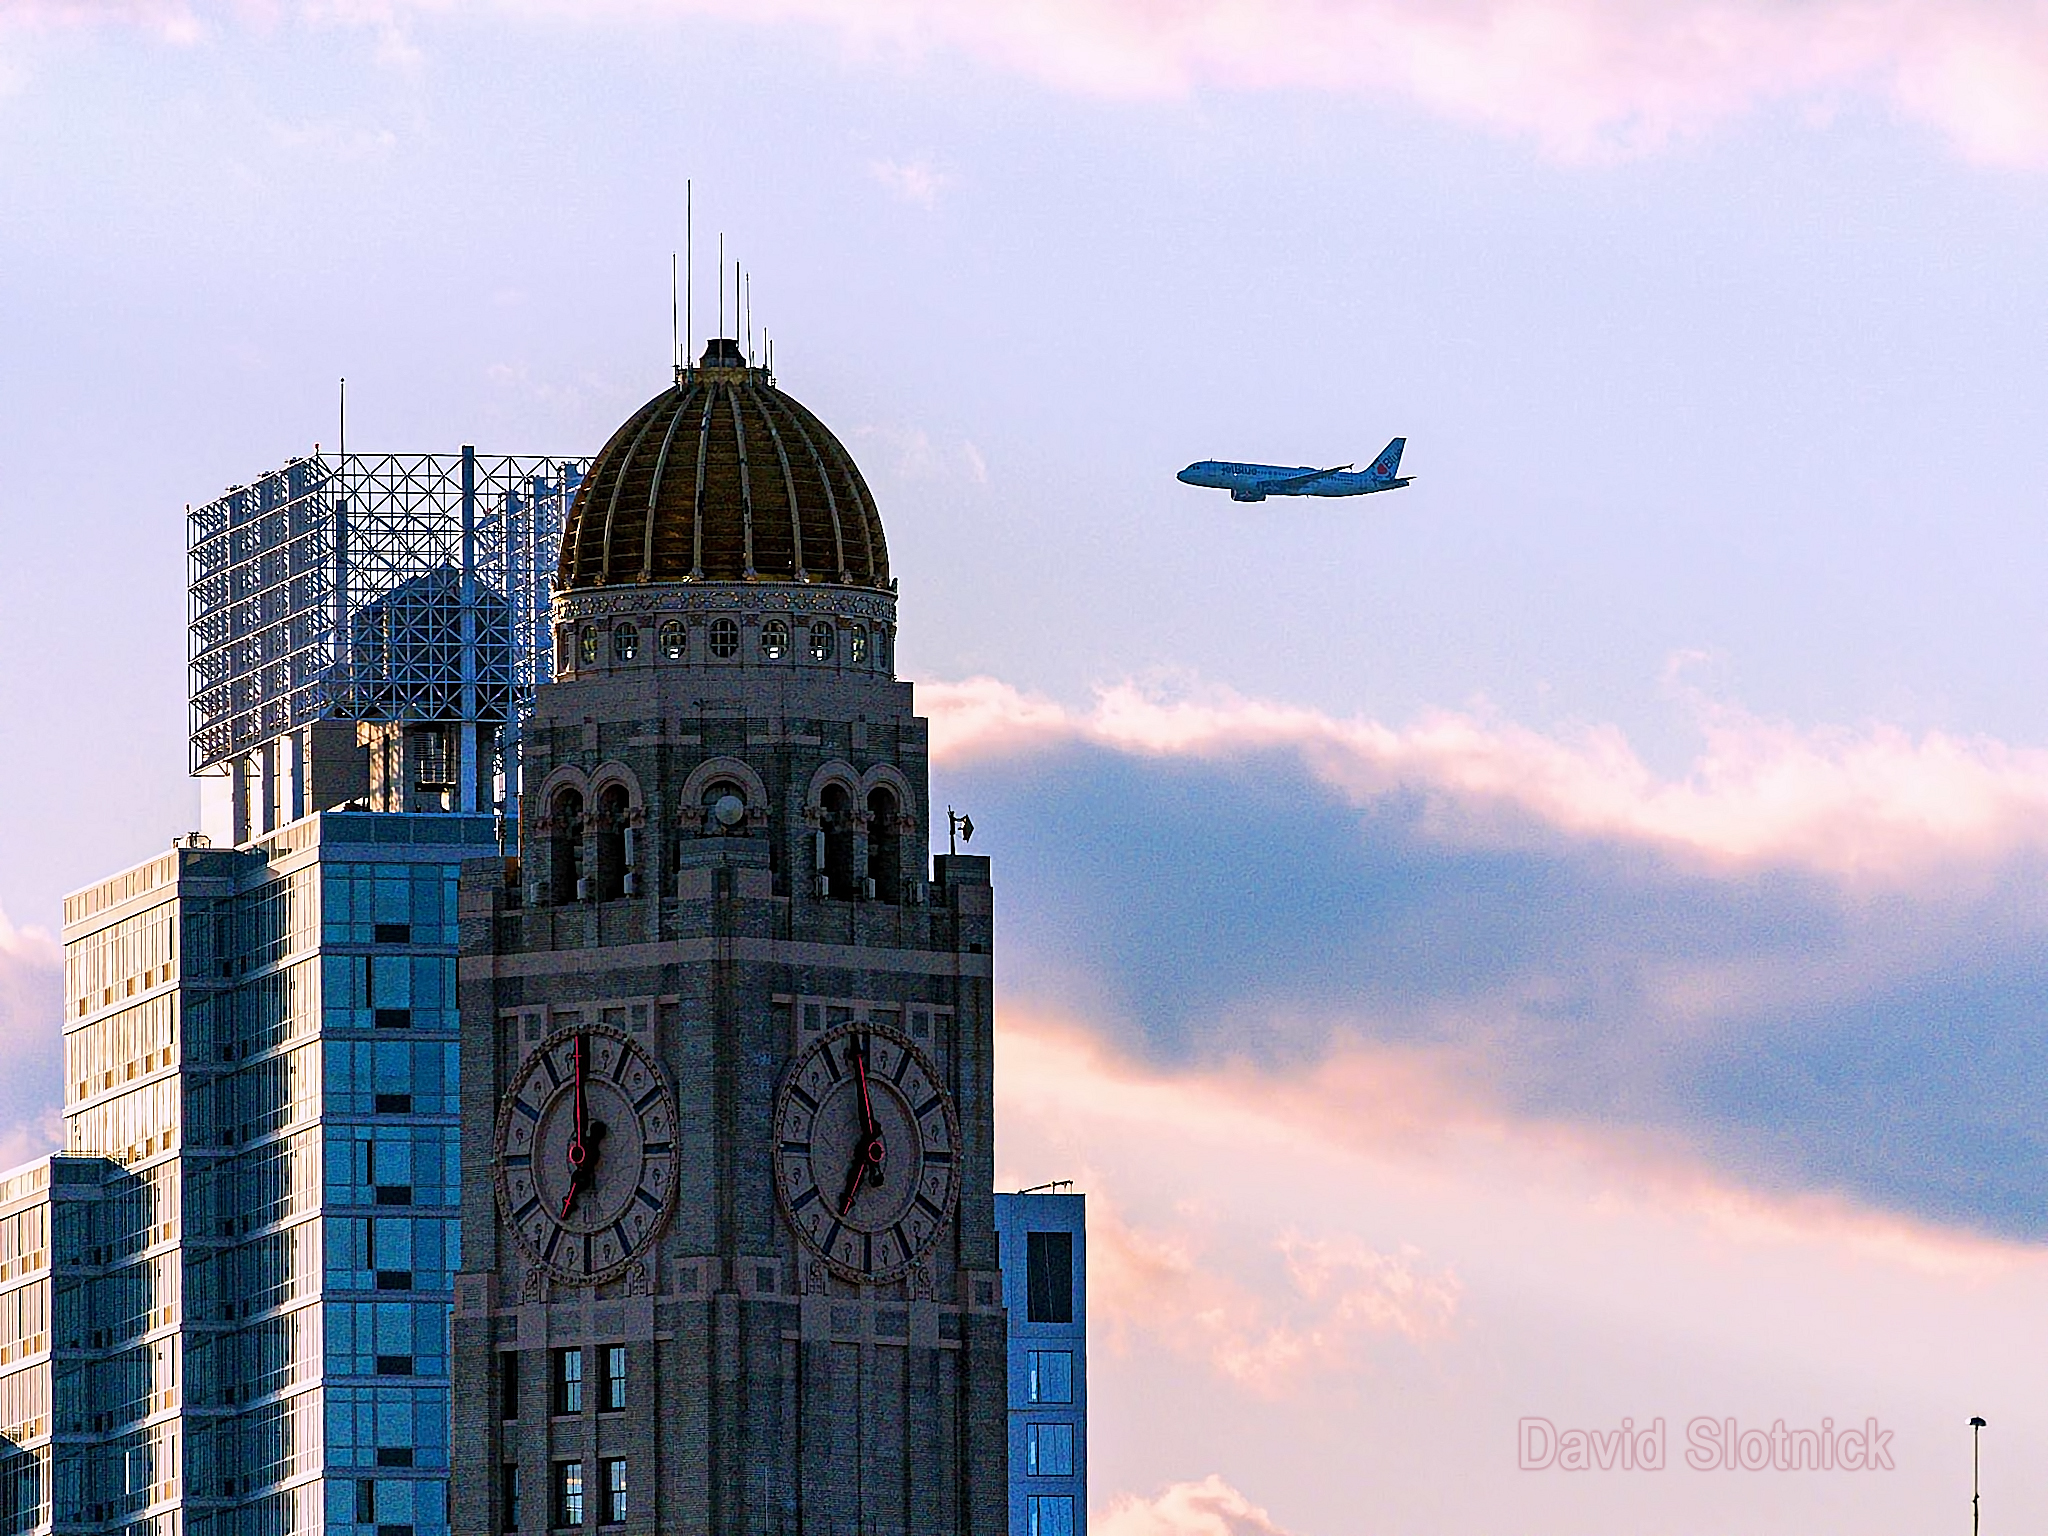 JetBlue Tribute Flyover Passing Williamsburg Bank Building In Brooklyn. Image Credit- David Slotnick